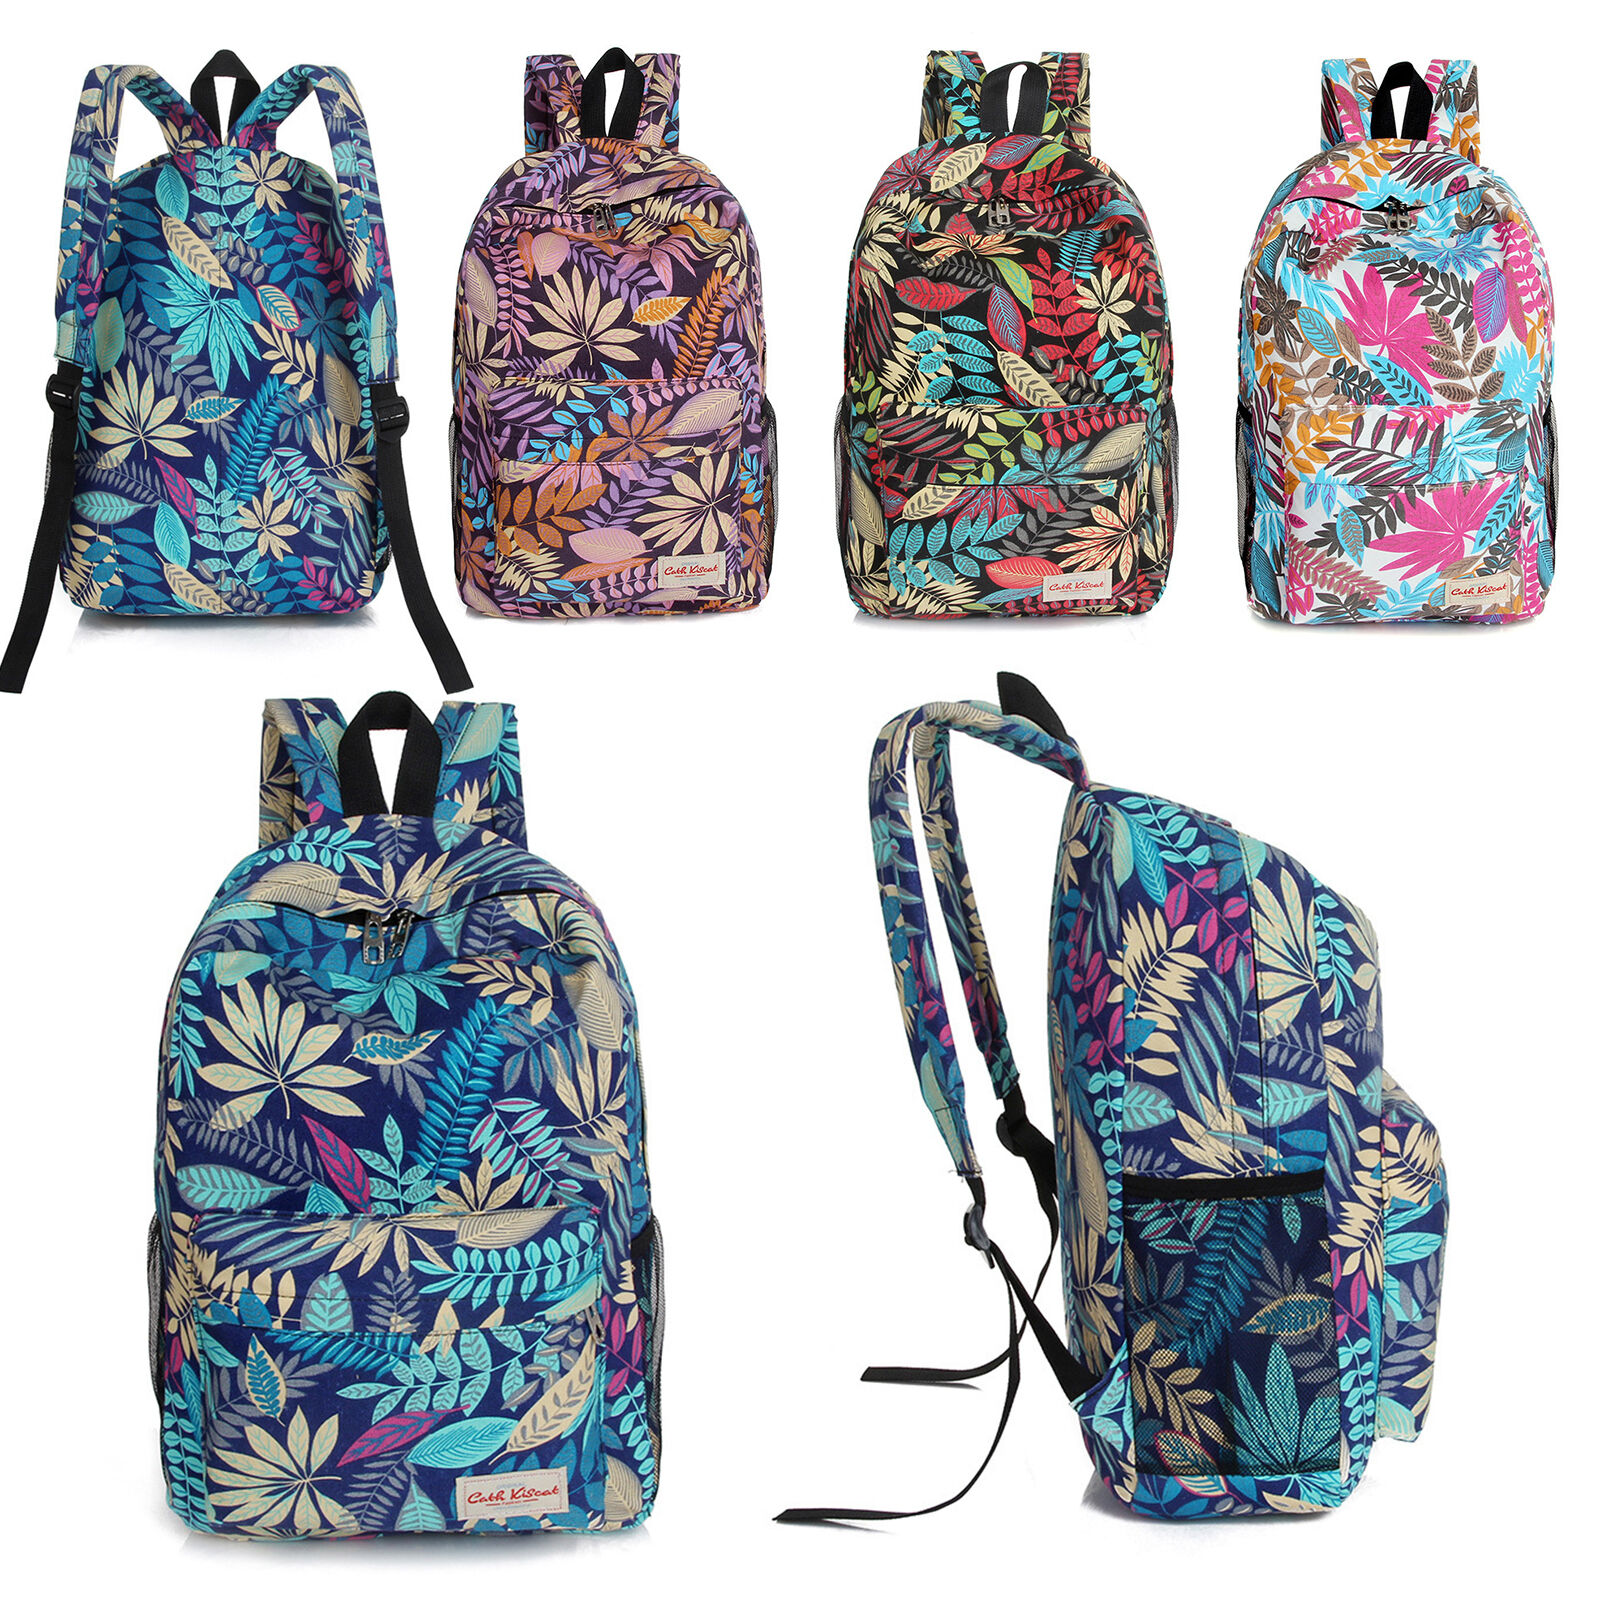 Womens Girls Shoulder School Bag Canvas Laptop Backpack Travel Hiking ... - s l1600